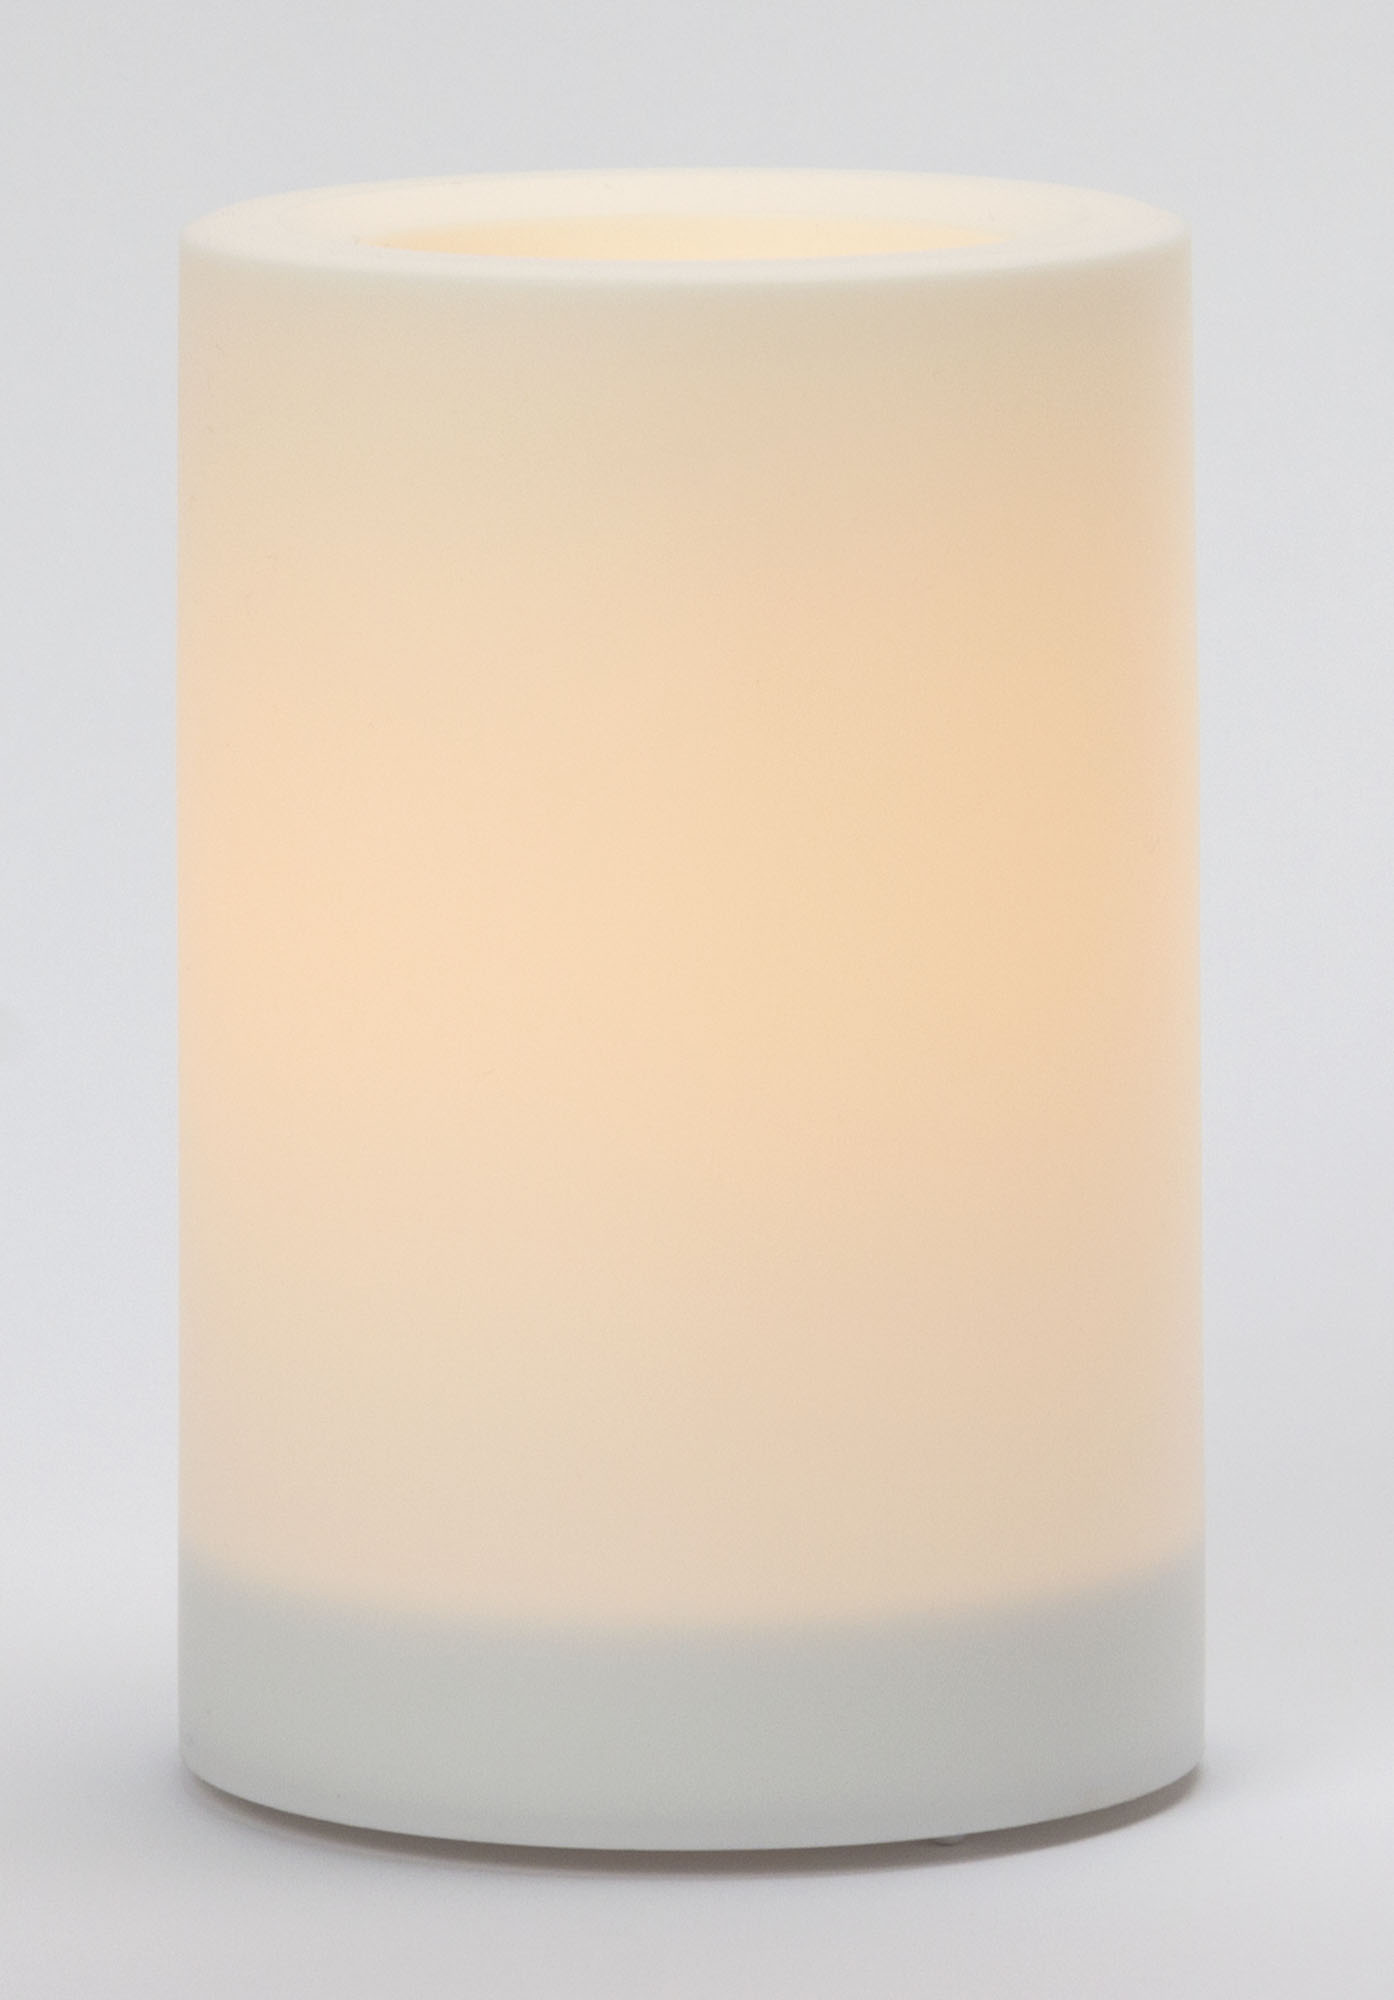 6x4 Inch Flameless Outdoor Pillar Candle with Timer - White